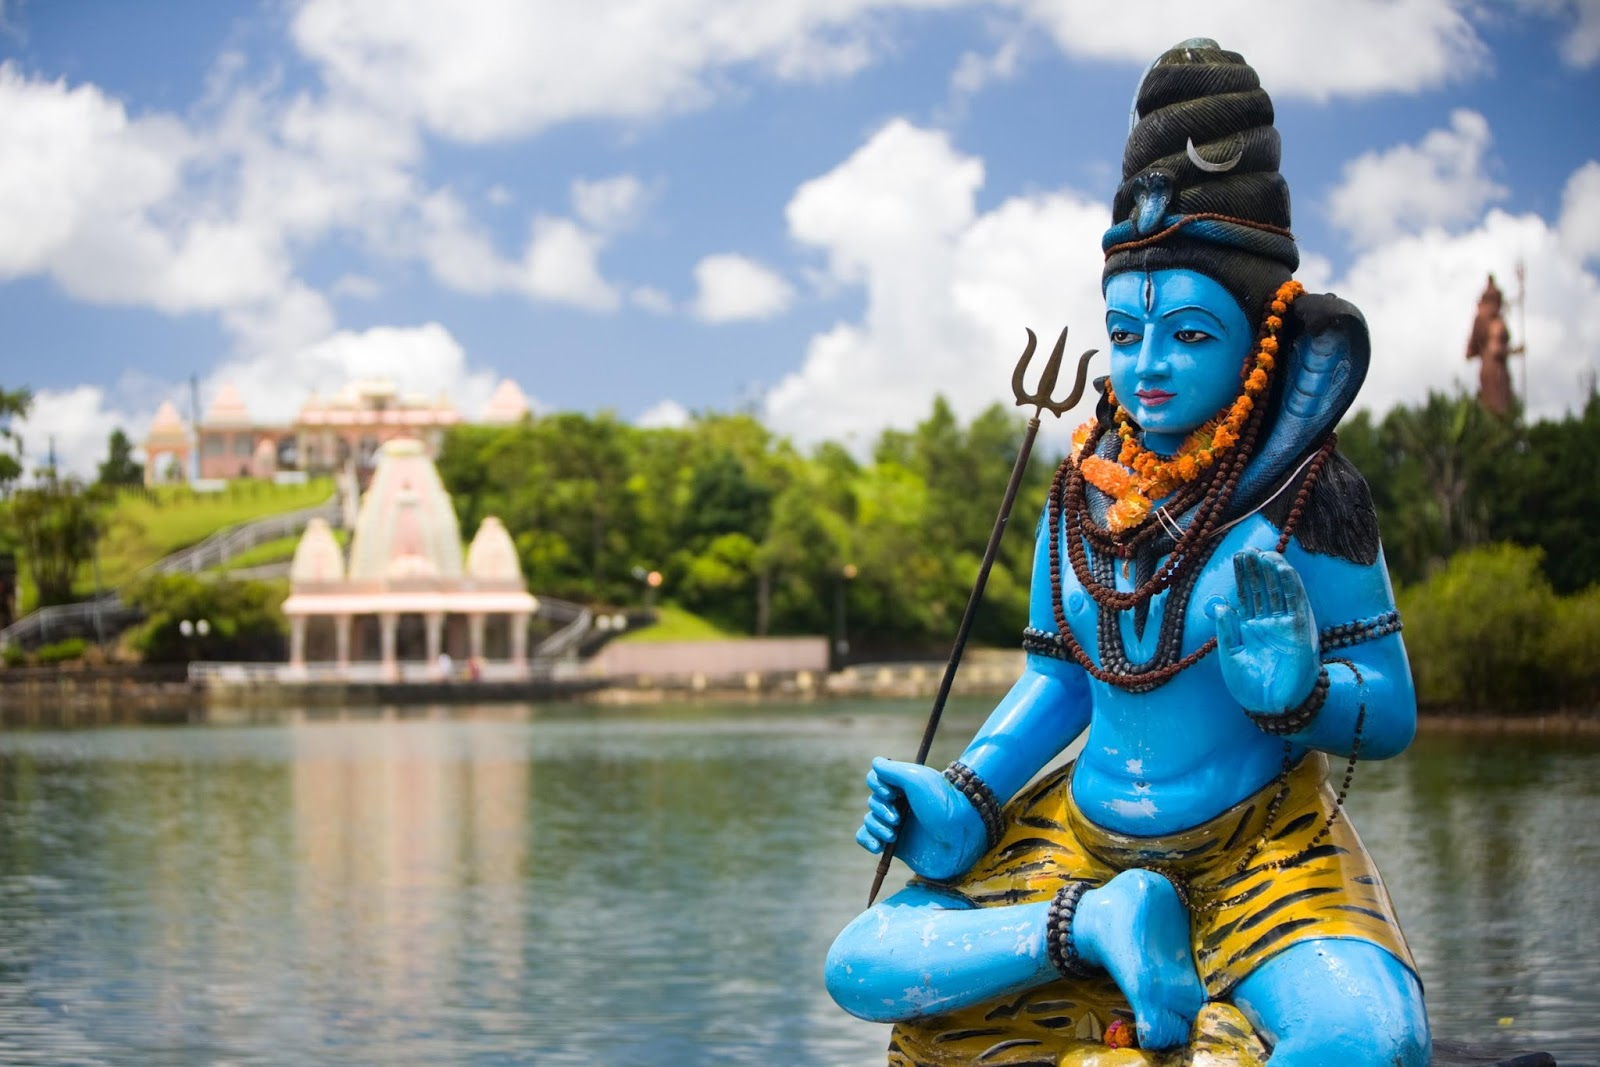 Lord shiva new hd wallpapers miss mander to you - New lord shiva wallpapers ...